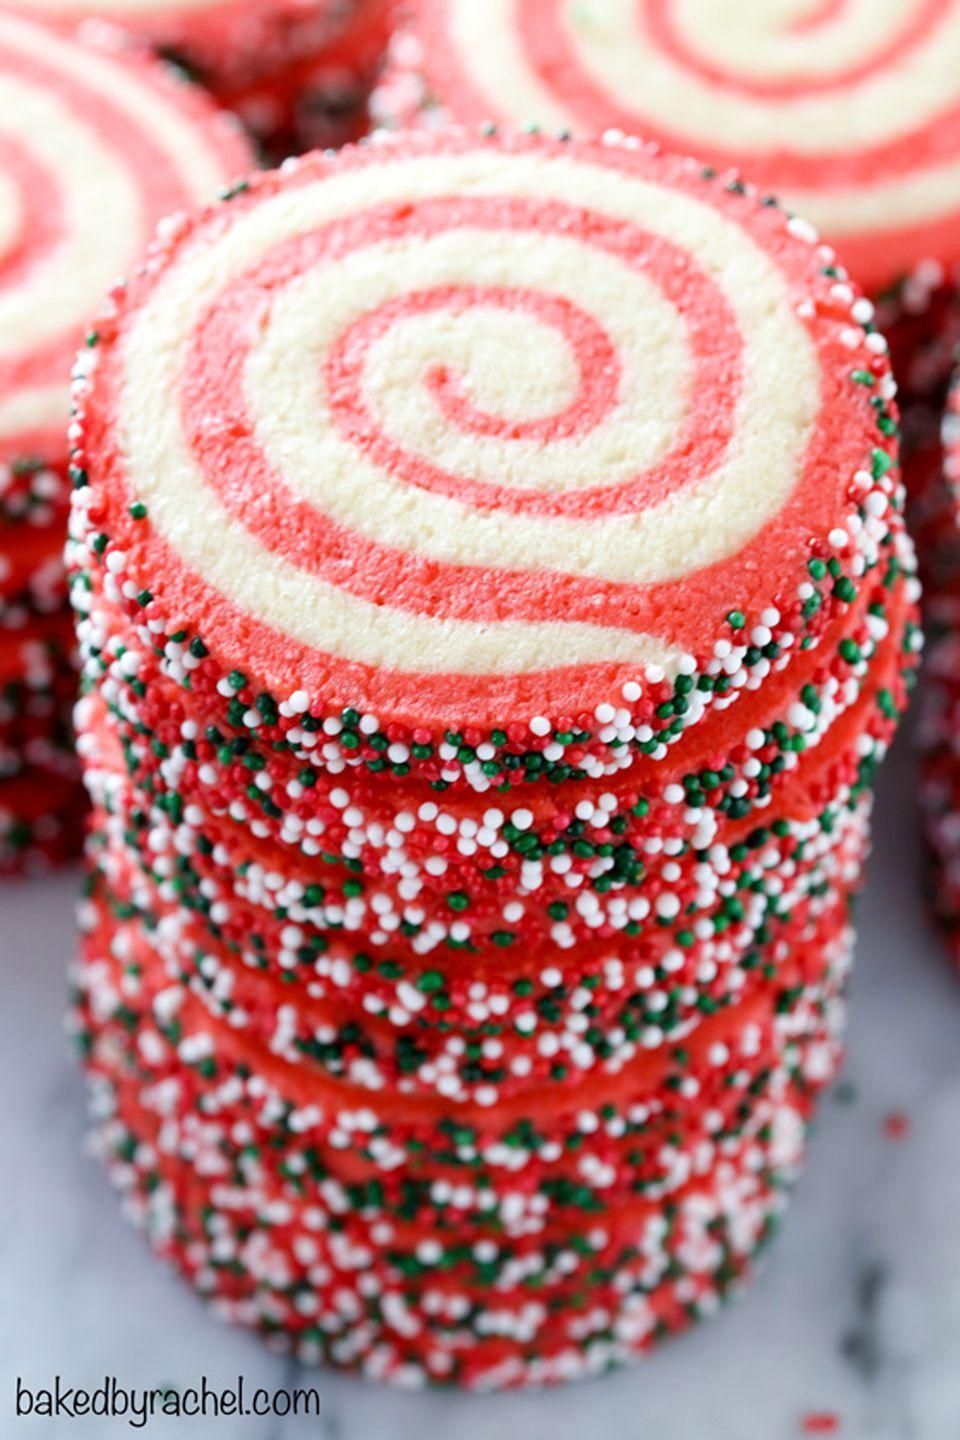 "<p>Have a <a href=""https://www.countryliving.com/food-drinks/g1059/homemade-food-gifts/"" rel=""nofollow noopener"" target=""_blank"" data-ylk=""slk:holiday cookie exchange"" class=""link rapid-noclick-resp"">holiday cookie exchange</a> coming up? These colorful pinwheels will impress the lucky recipient with both taste and presentation. </p><p><strong>Get the recipe at <a href=""https://www.bakedbyrachel.com/christmas-pinwheel-sugar-cookies/"" rel=""nofollow noopener"" target=""_blank"" data-ylk=""slk:Baked by Rachel"" class=""link rapid-noclick-resp"">Baked by Rachel</a>.</strong></p><p><a class=""link rapid-noclick-resp"" href=""https://www.amazon.com/KitchenAid-KSM75WH-Classic-4-5-Quart-Tilt-Head/dp/B00063ULMI?tag=syn-yahoo-20&ascsubtag=%5Bartid%7C10050.g.647%5Bsrc%7Cyahoo-us"" rel=""nofollow noopener"" target=""_blank"" data-ylk=""slk:SHOP STAND MIXERS"">SHOP STAND MIXERS</a></p>"